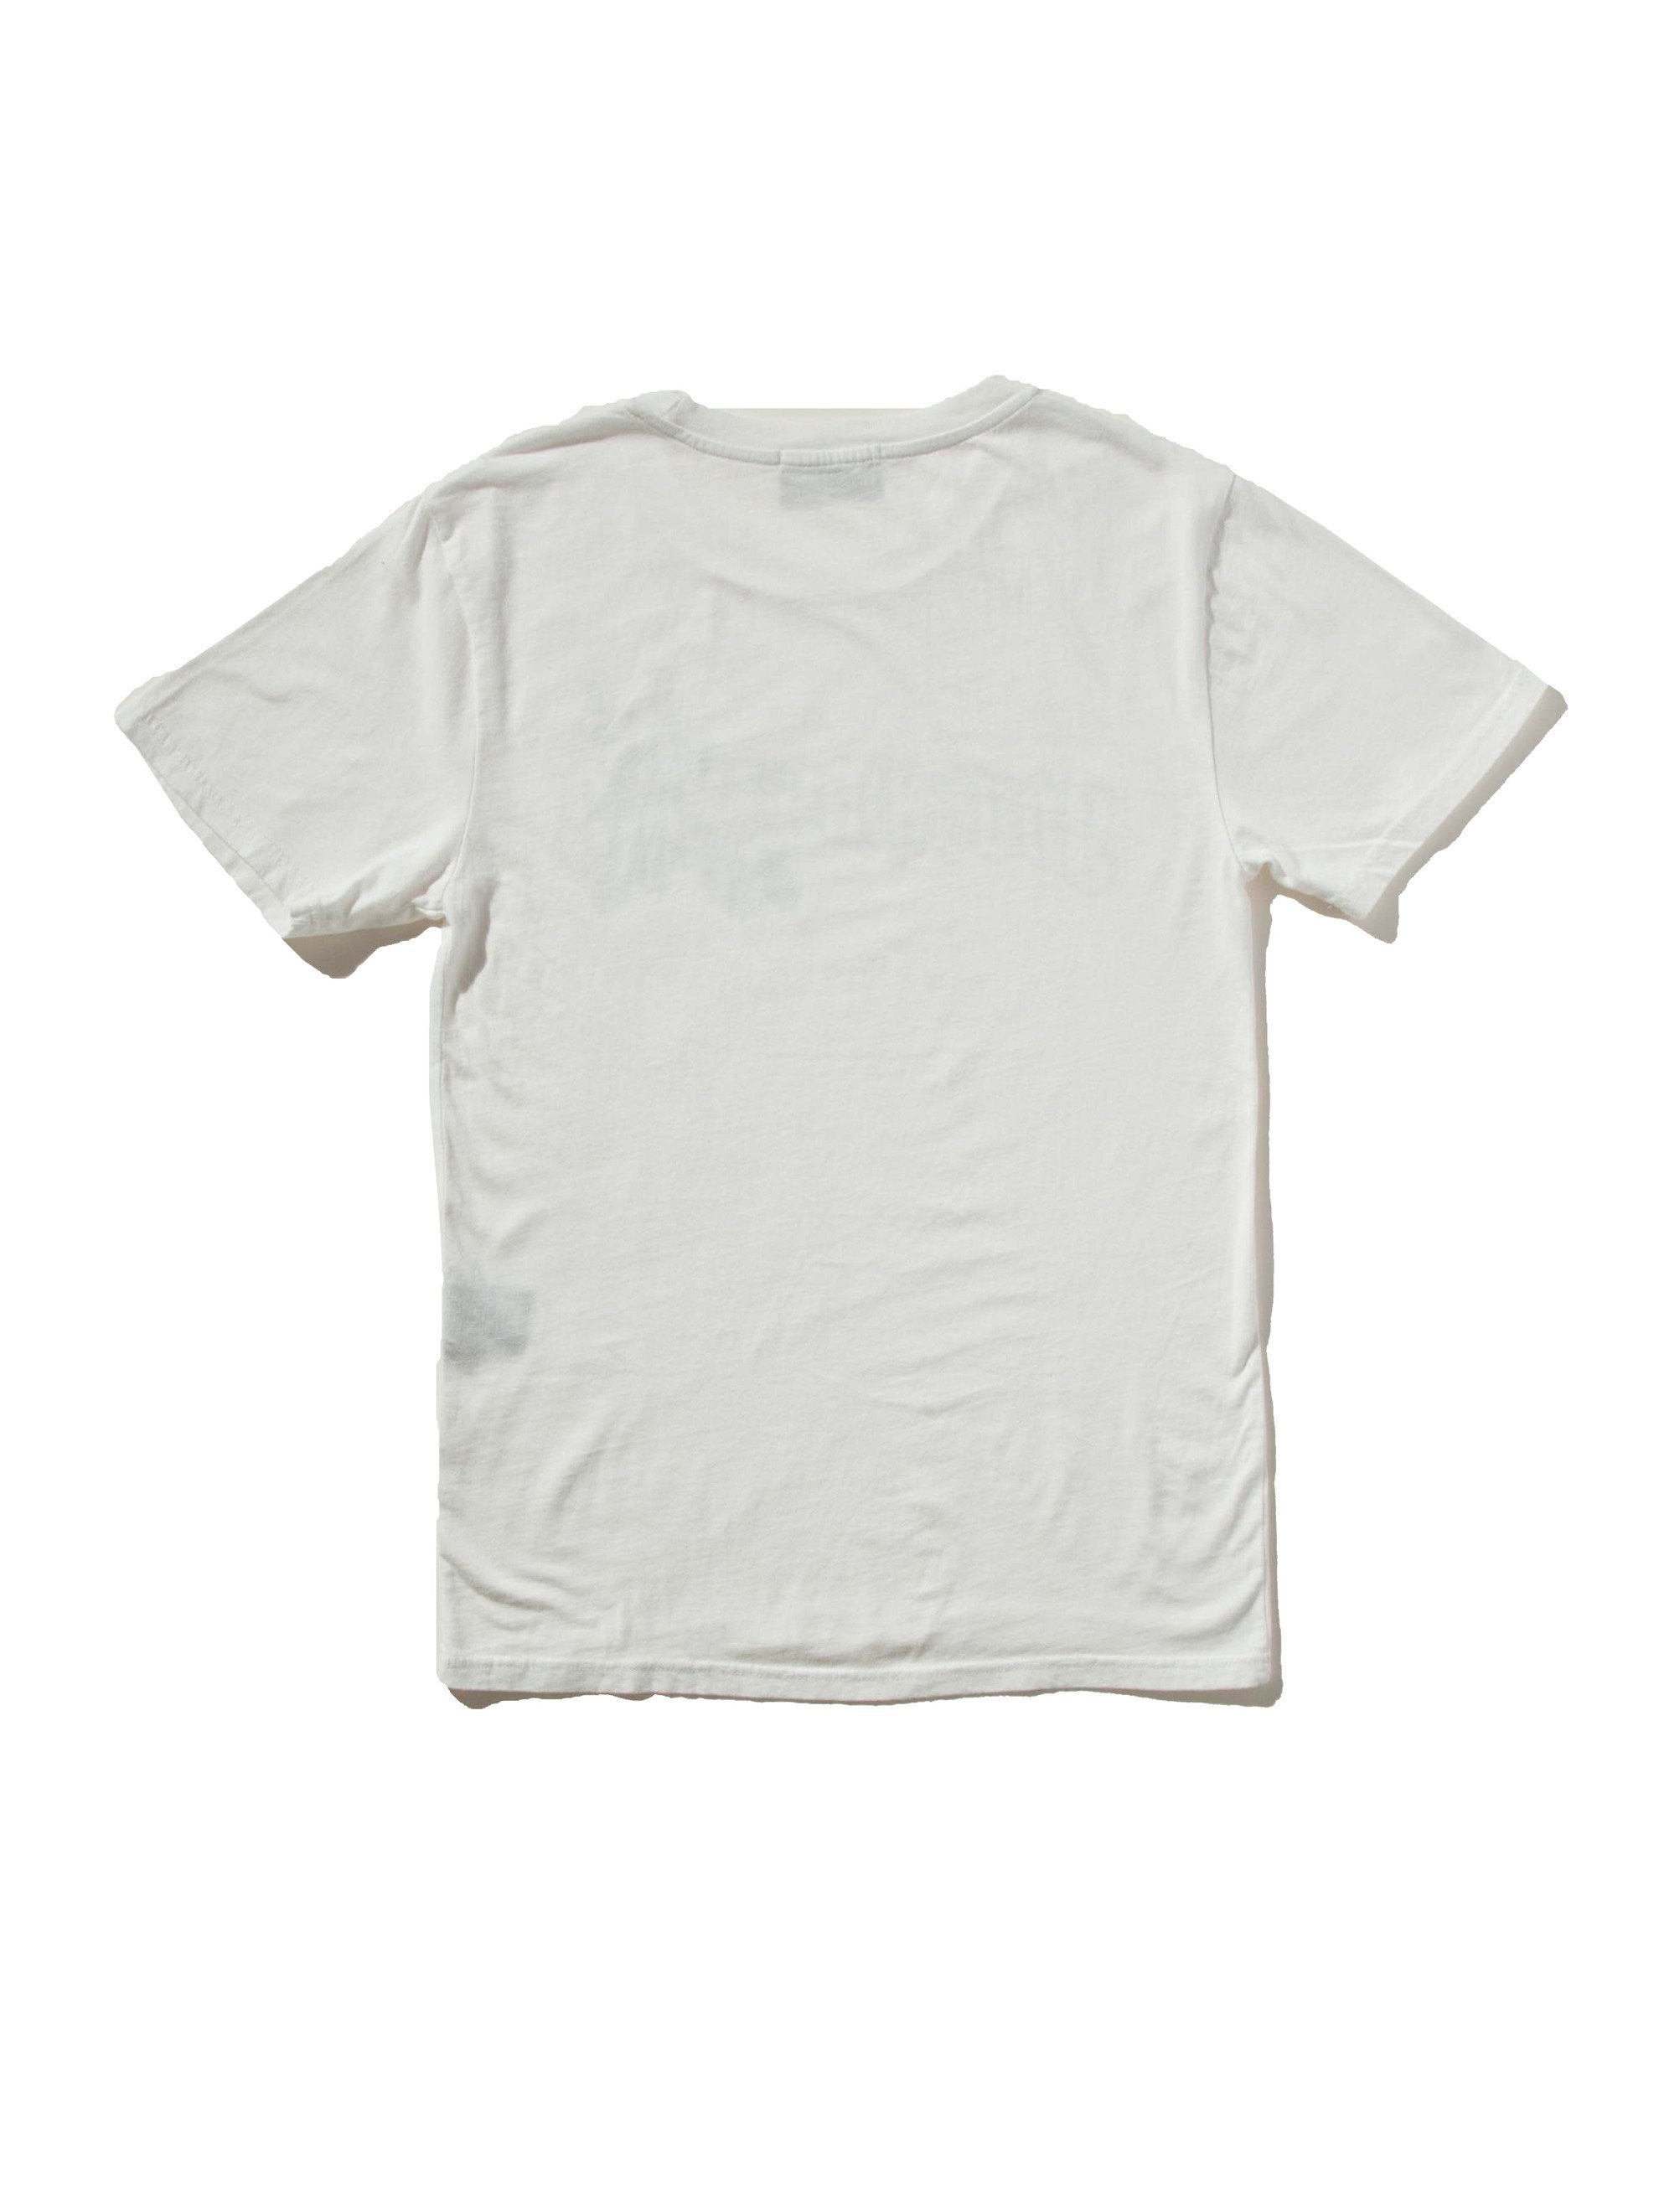 Dirty White Secret Garden T-Shirt 5